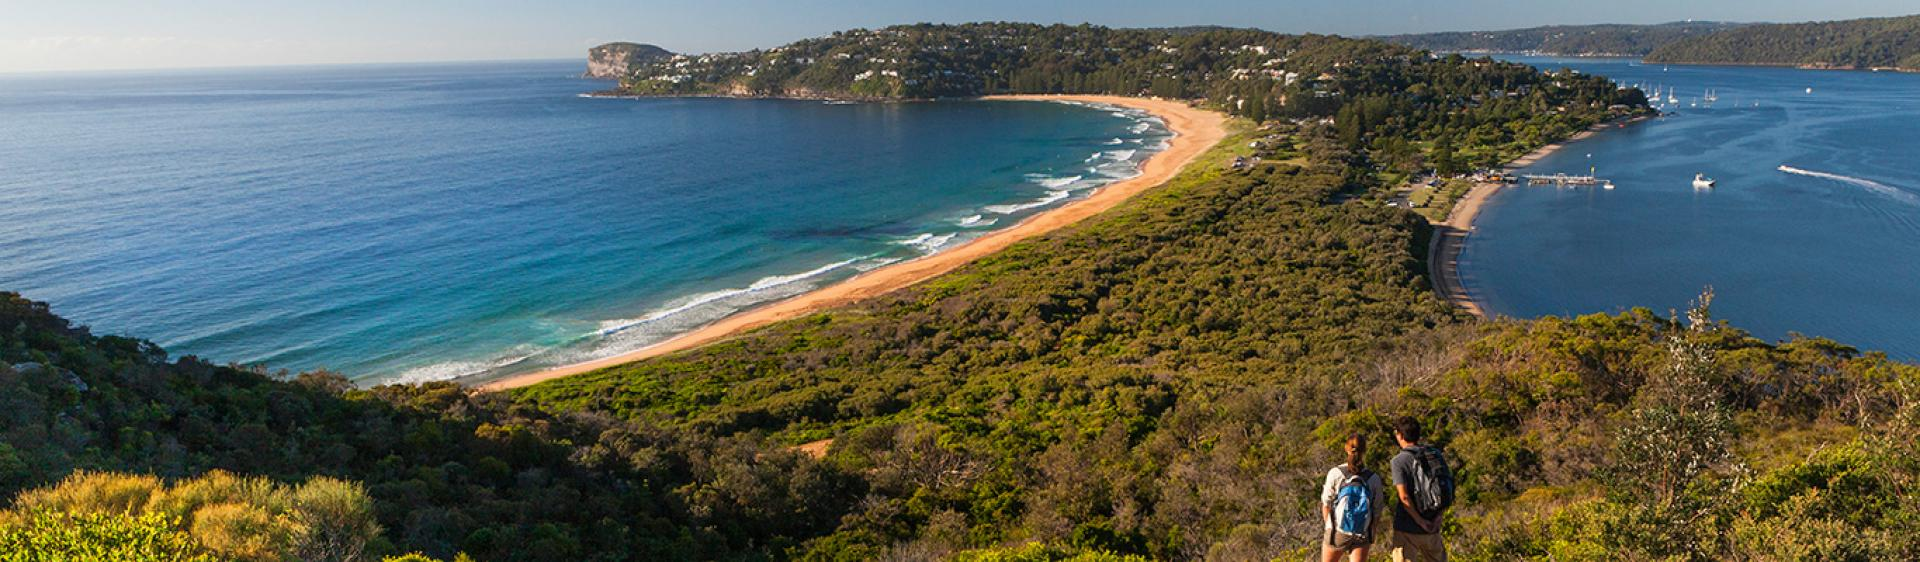 Barrenjoey Lighthouse Track Palm Beach